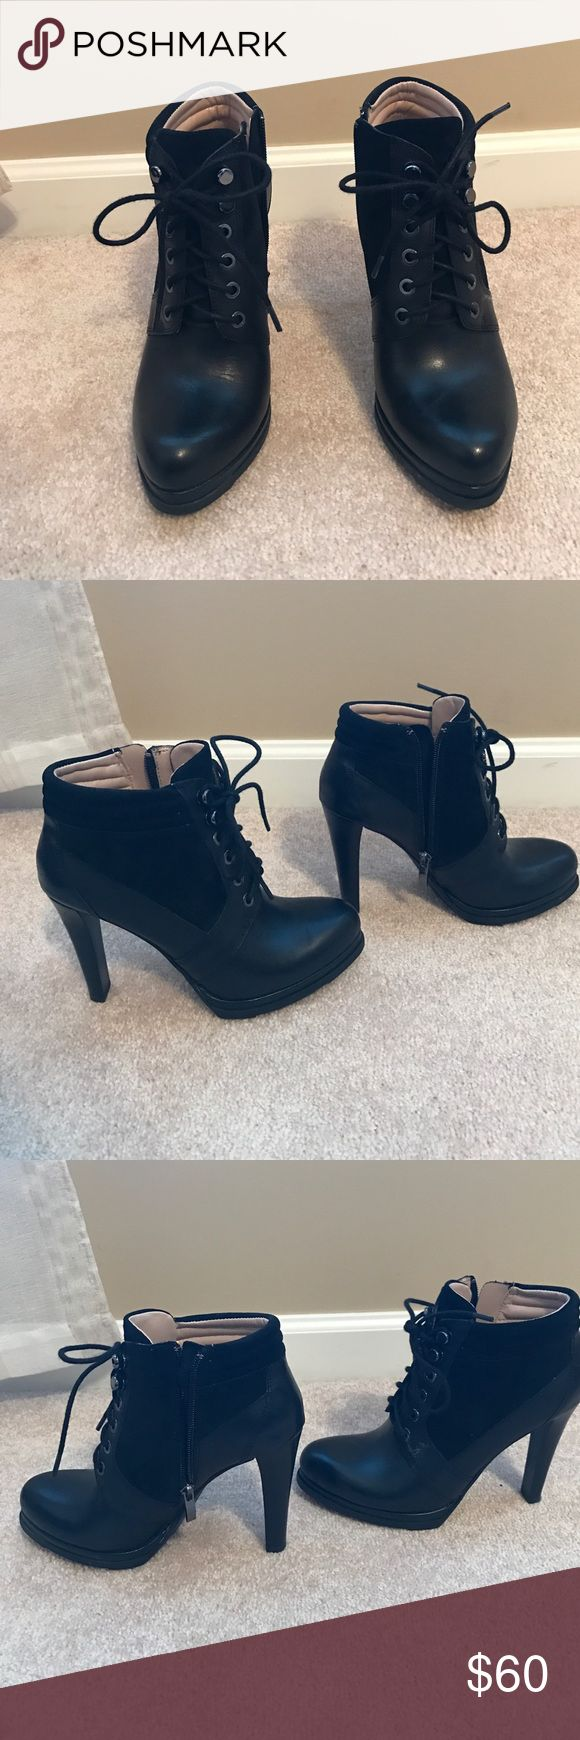 FRENCH CONNECTION BOOTIES worn once Heeled lace up booties with instep zipper. Worn once, excellent condition. Black with leather and suede. French Connection Shoes Heeled Boots